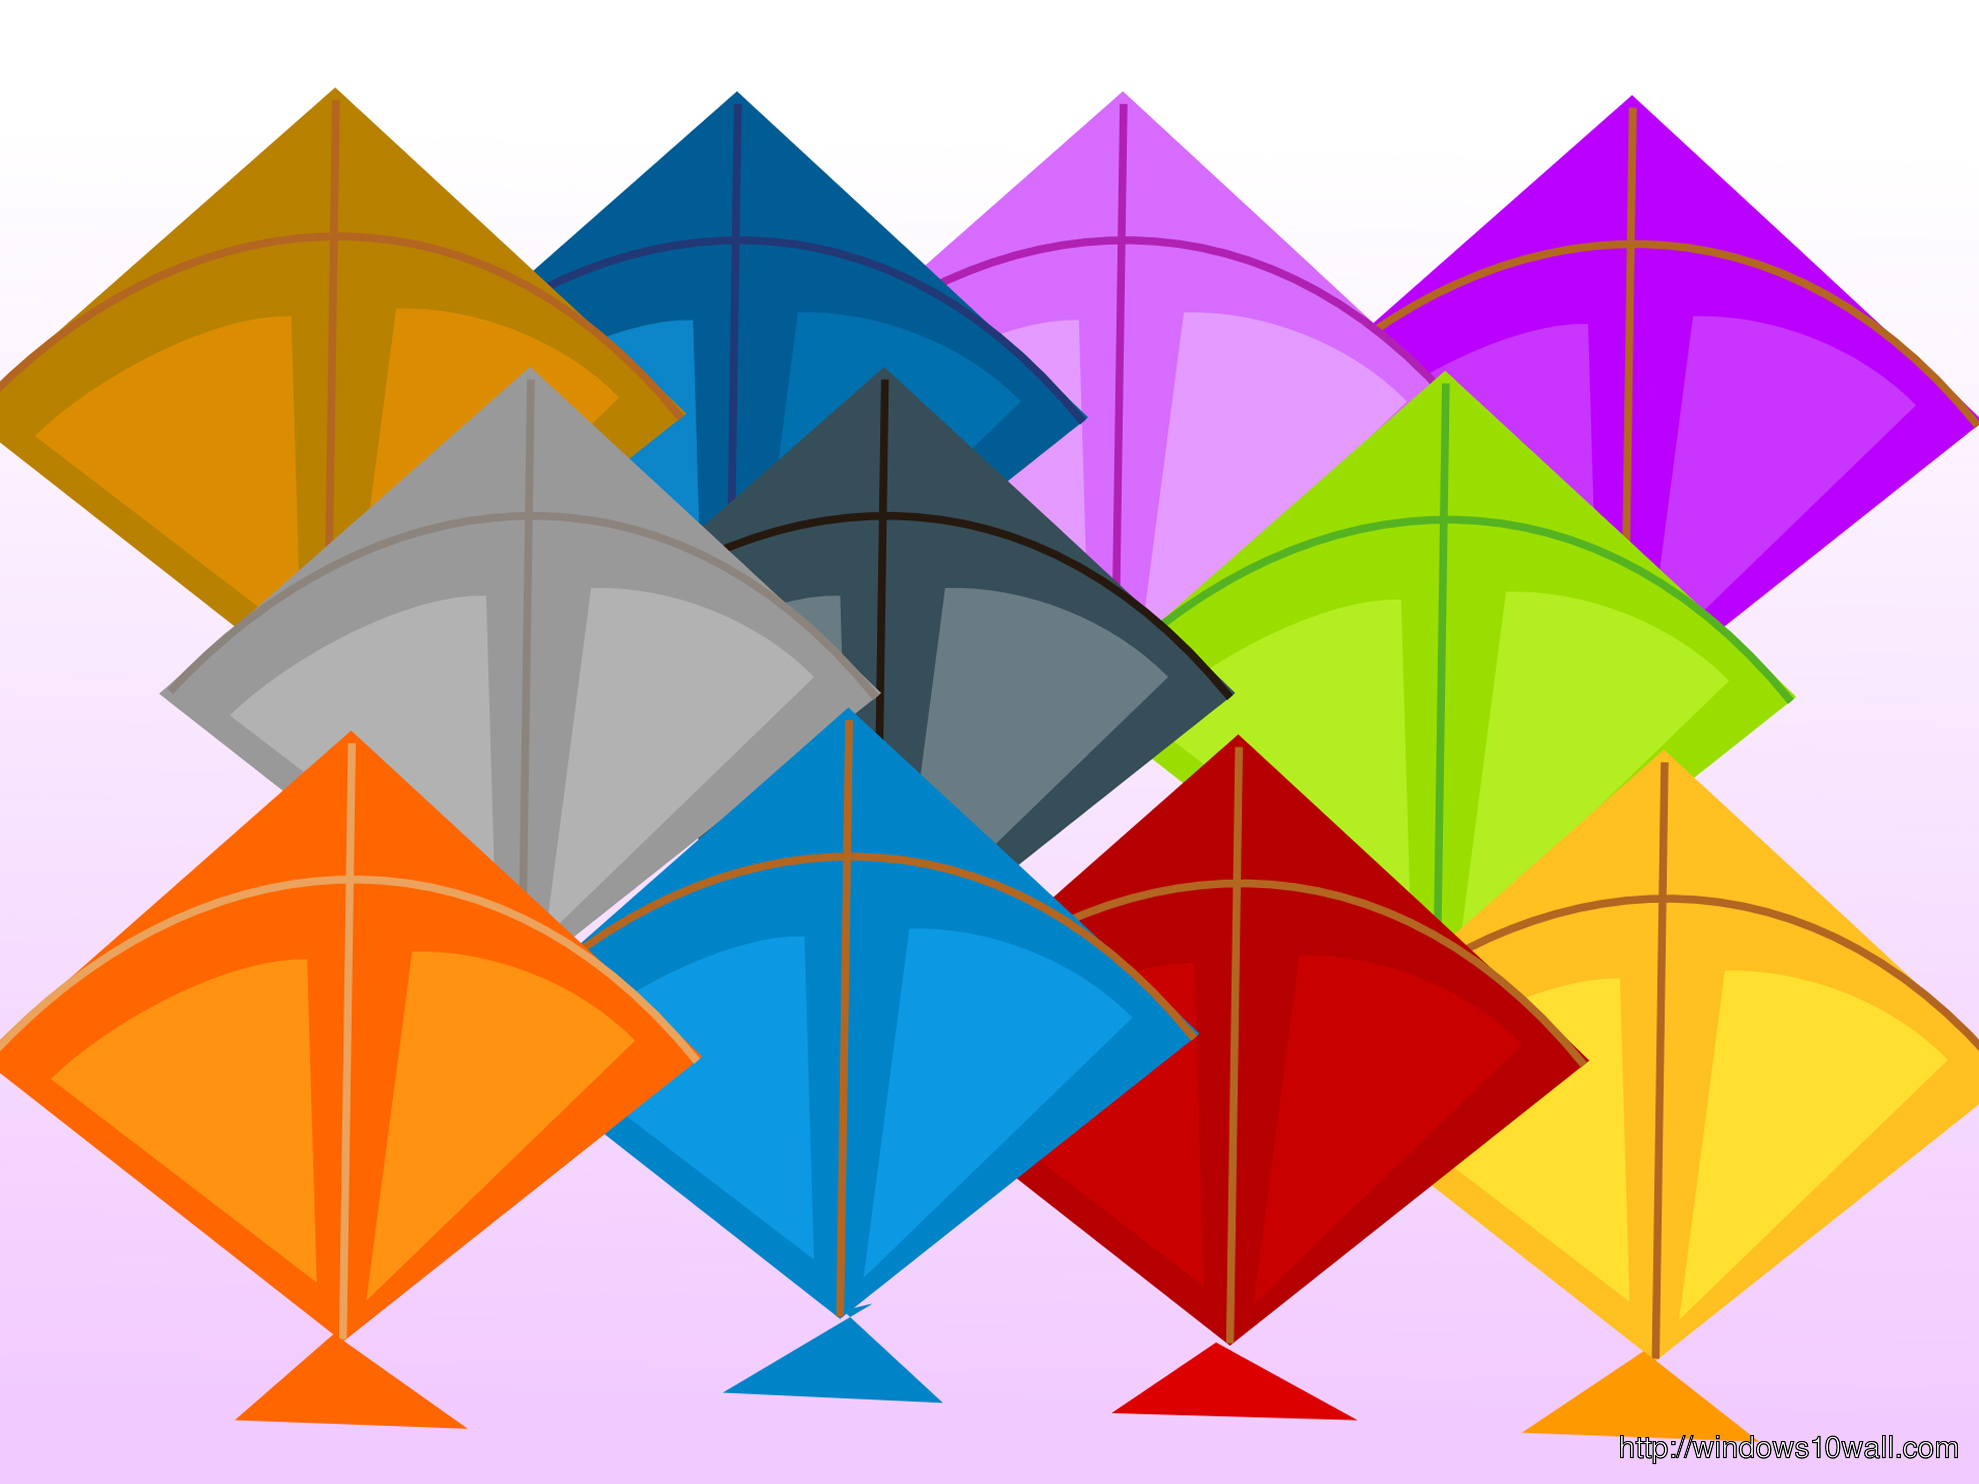 kites makar sankranti background wallpaper windows 10 wallpapers windows 10 wallpapers